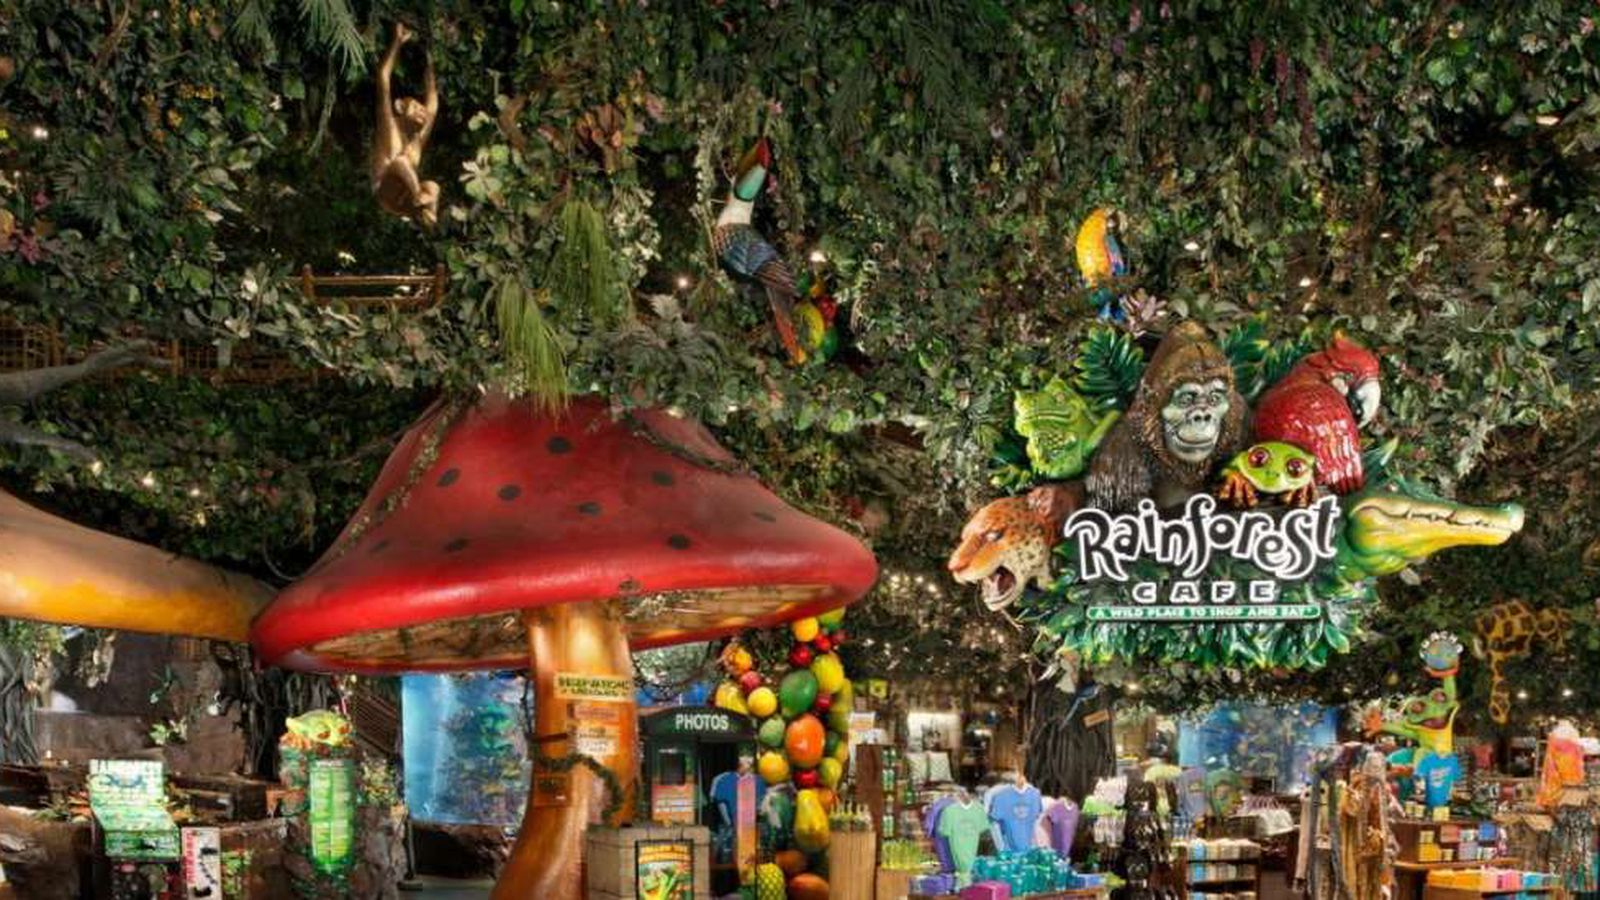 New Orleans Rainforest Cafe